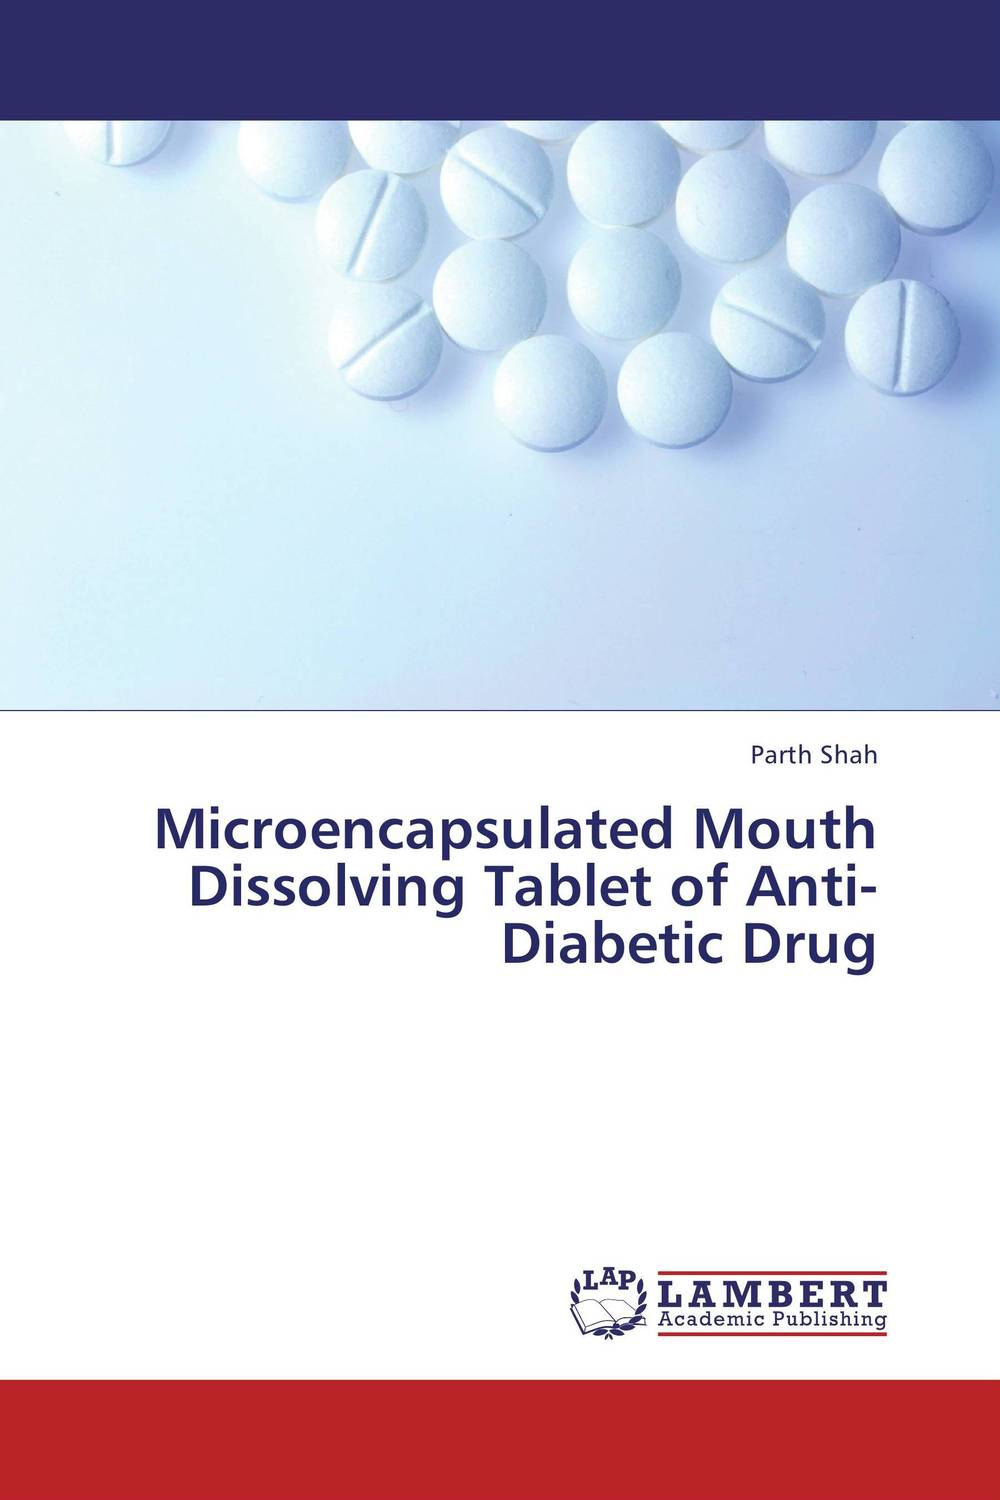 Microencapsulated Mouth Dissolving Tablet of Anti-Diabetic Drug amita yadav kamal singh rathore and geeta m patel formulation evaluation and optimization of mouth dissolving tablets